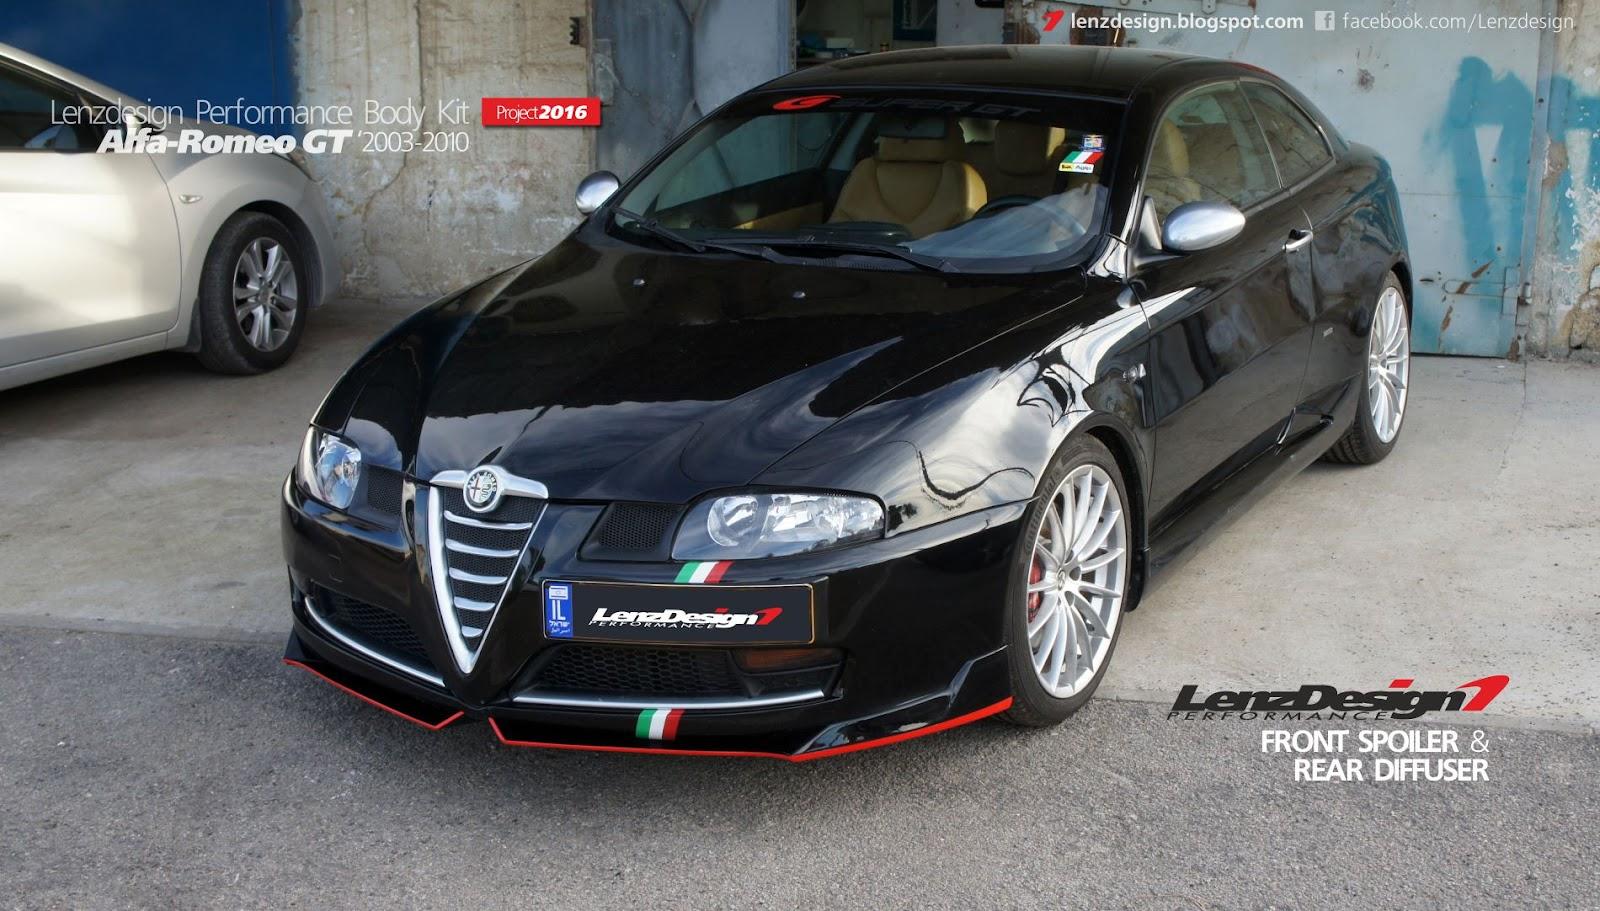 alfa romeo gt body kit lenzdesign performance. Black Bedroom Furniture Sets. Home Design Ideas